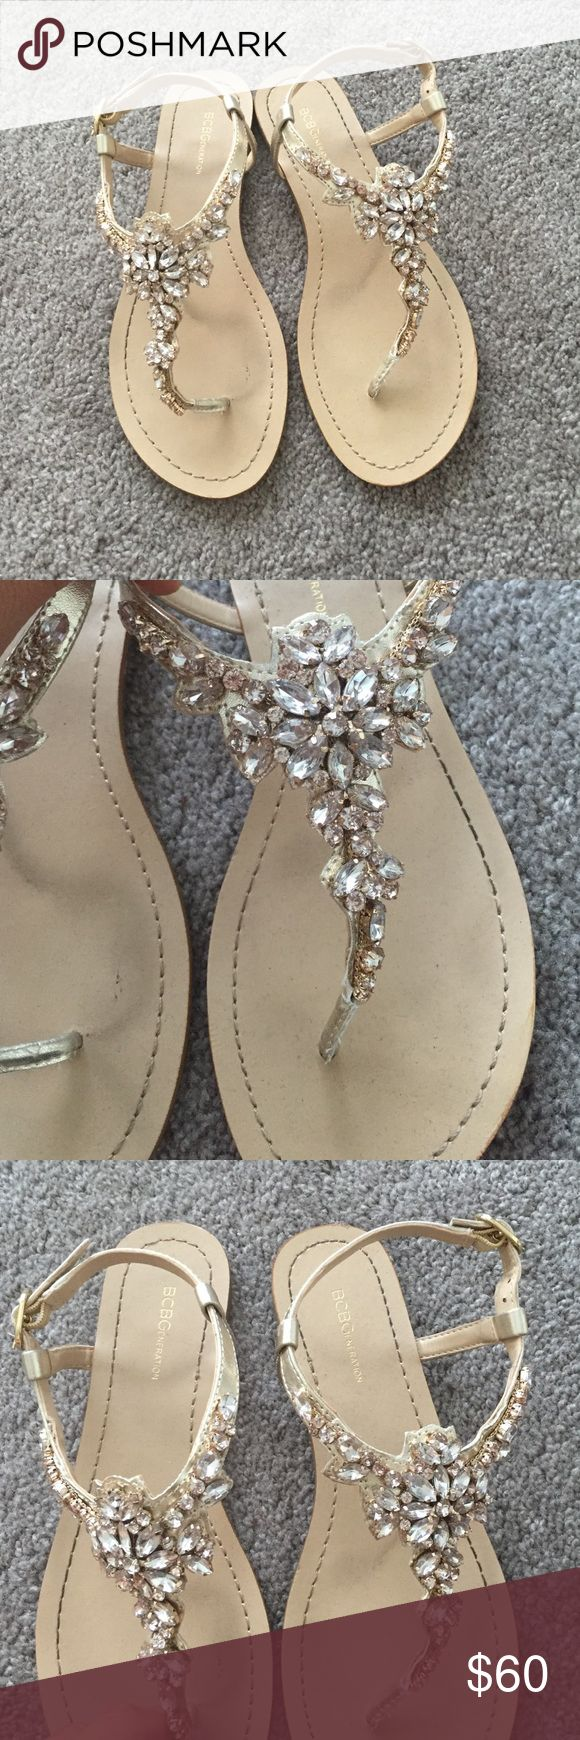 BCBGeneration Rose Gold Jewel/Sparkle Sandals GORGEOUS BCBGeneration Rose gold jewel sandals - I wore these super briefly while getting ready for my wedding day, still in like new condition. True to size. No trades! BCBGeneration Shoes Sandals